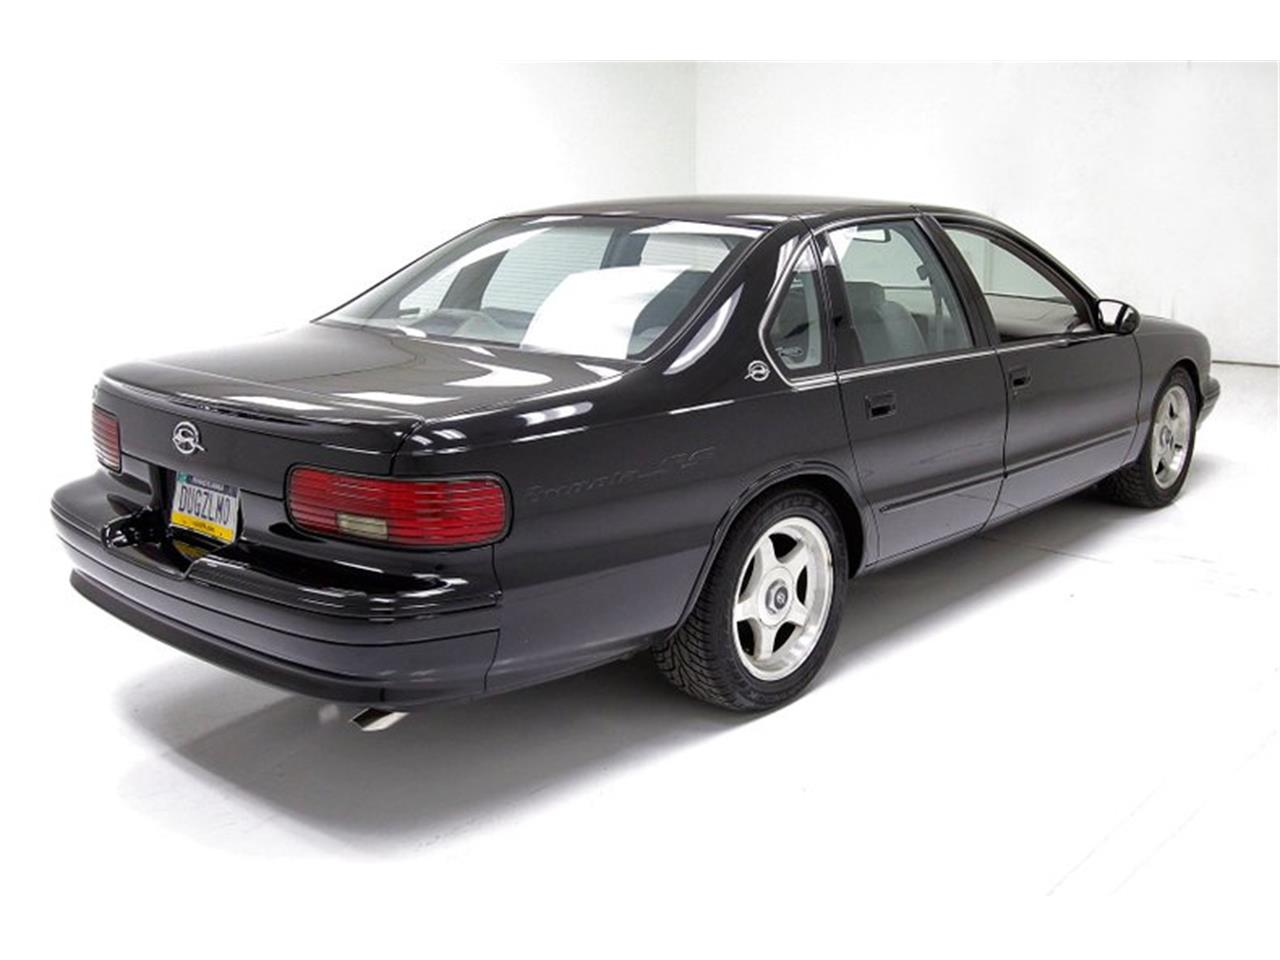 Large Picture of '96 Impala - OXVV